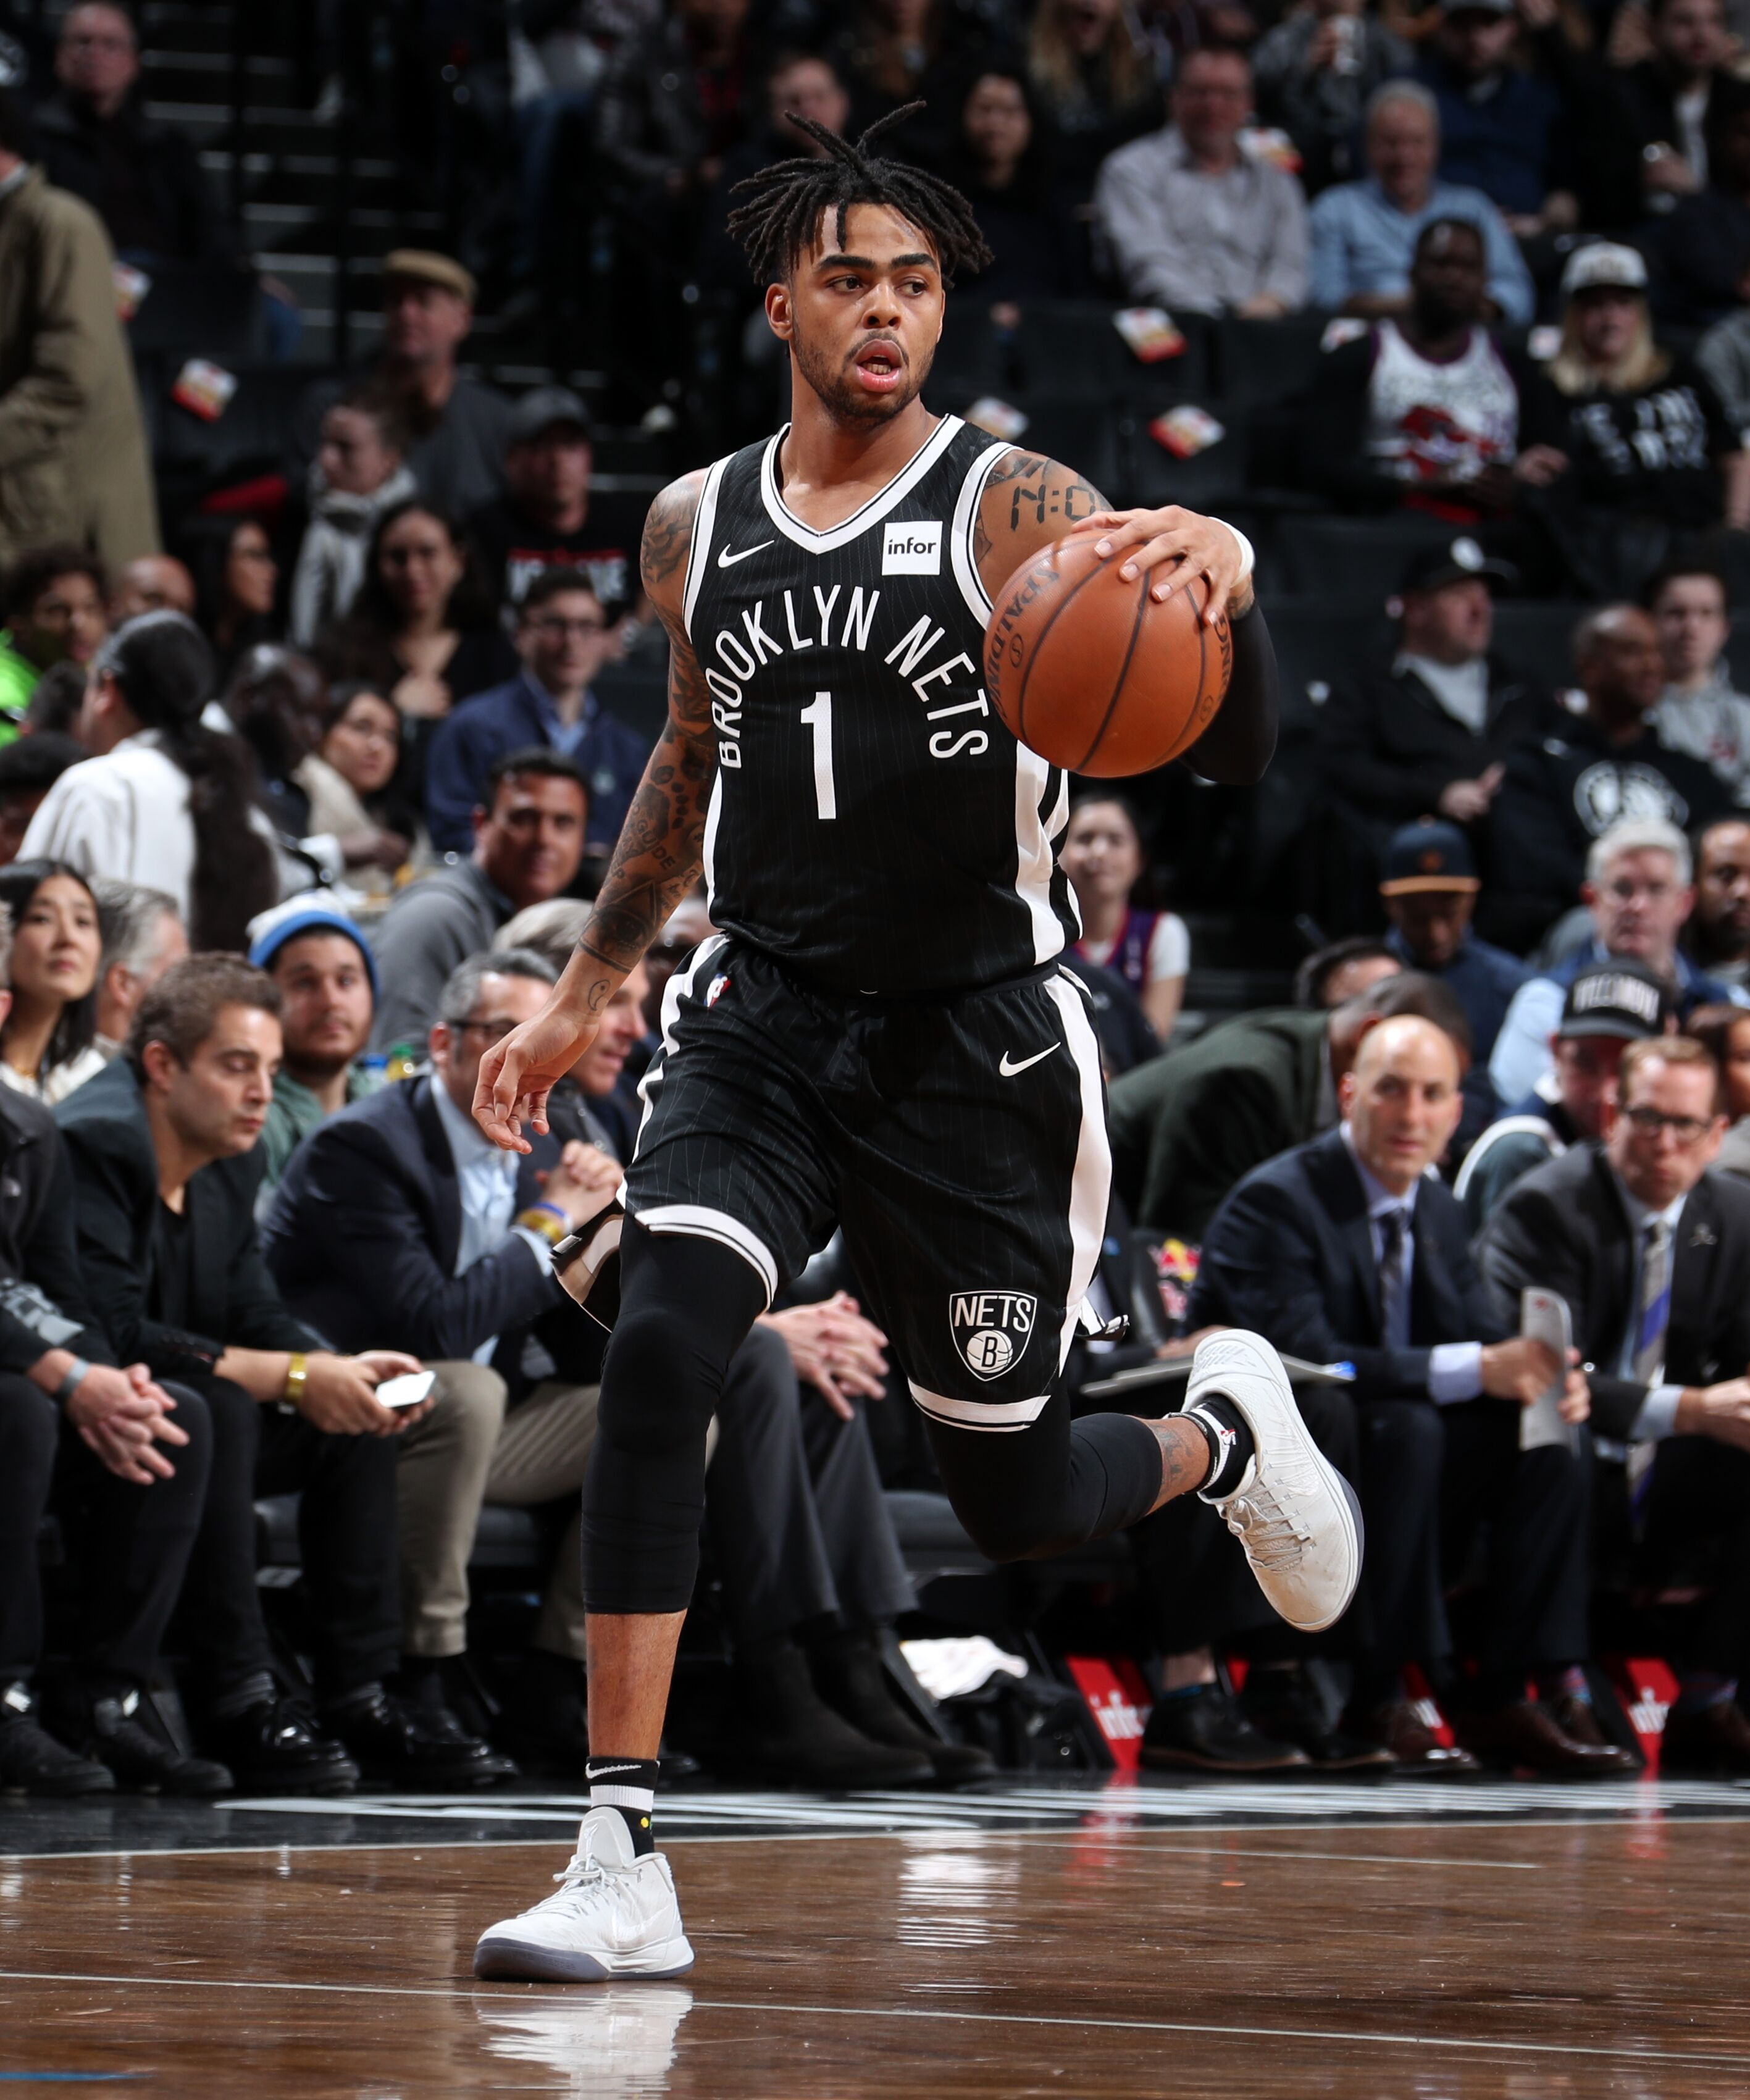 BROOKLYN, NY - MARCH 13: D'Angelo Russell